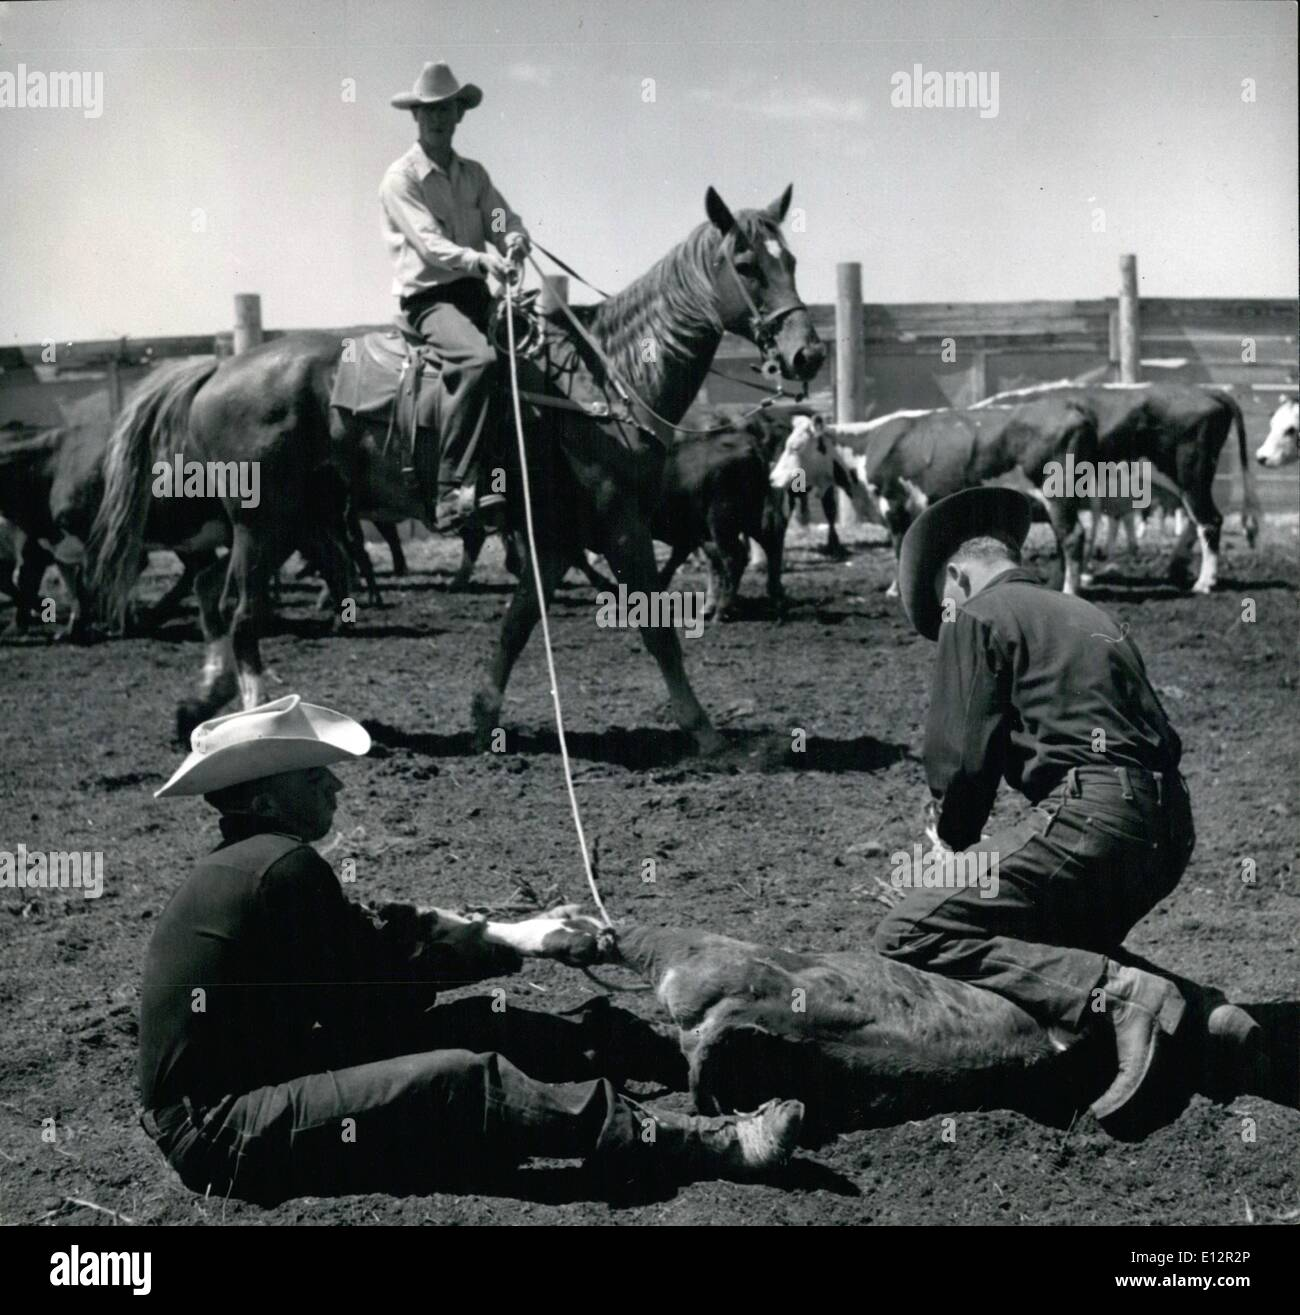 Feb. 24, 2012 - Cowboys expertly wrassle struggling 100-lb calf. One grabs left hind leg, the other the rope then both heave the calf so that it is lying on its right side. Well-trained horse keeps rope taut until it is loosened. Calf is kept immobile by one cowboy kneeling on neck while other holds tightly on to left hind leg, meanwhile pushing right hind leg forward with his boot to keep it from kicking. - Stock Image